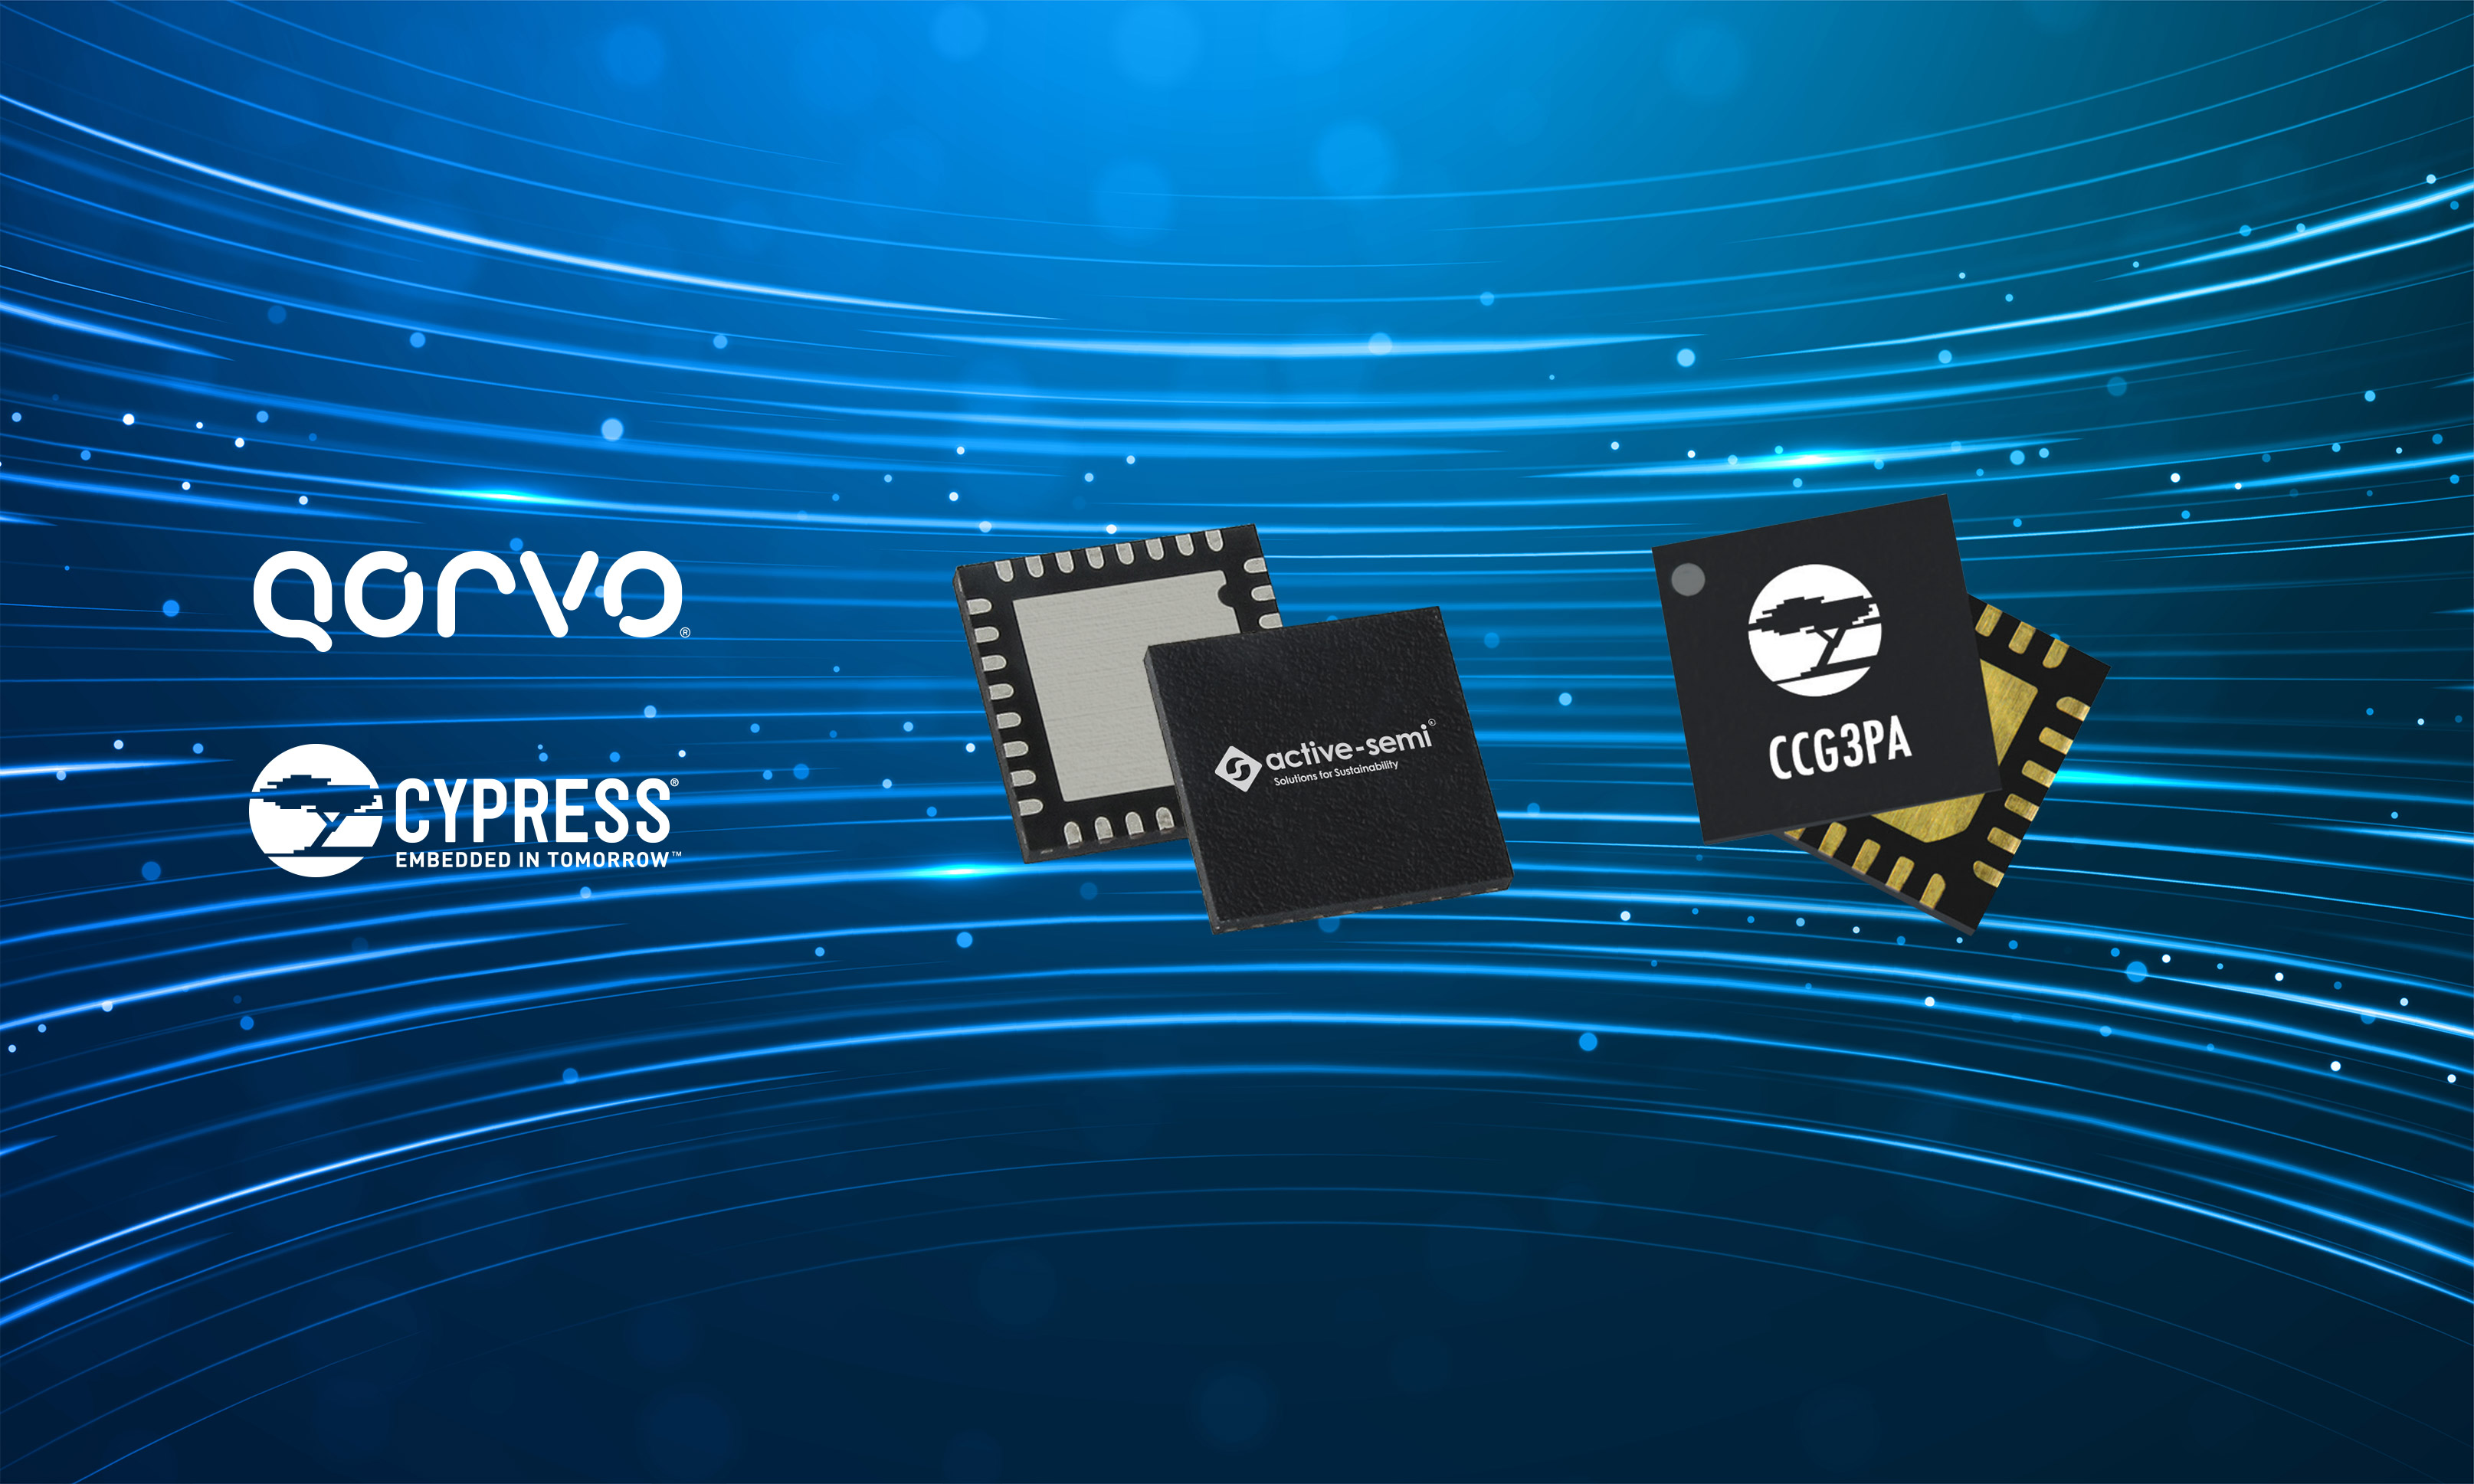 Qorvo and Cypress Semiconductor Create USB-C Reference Design